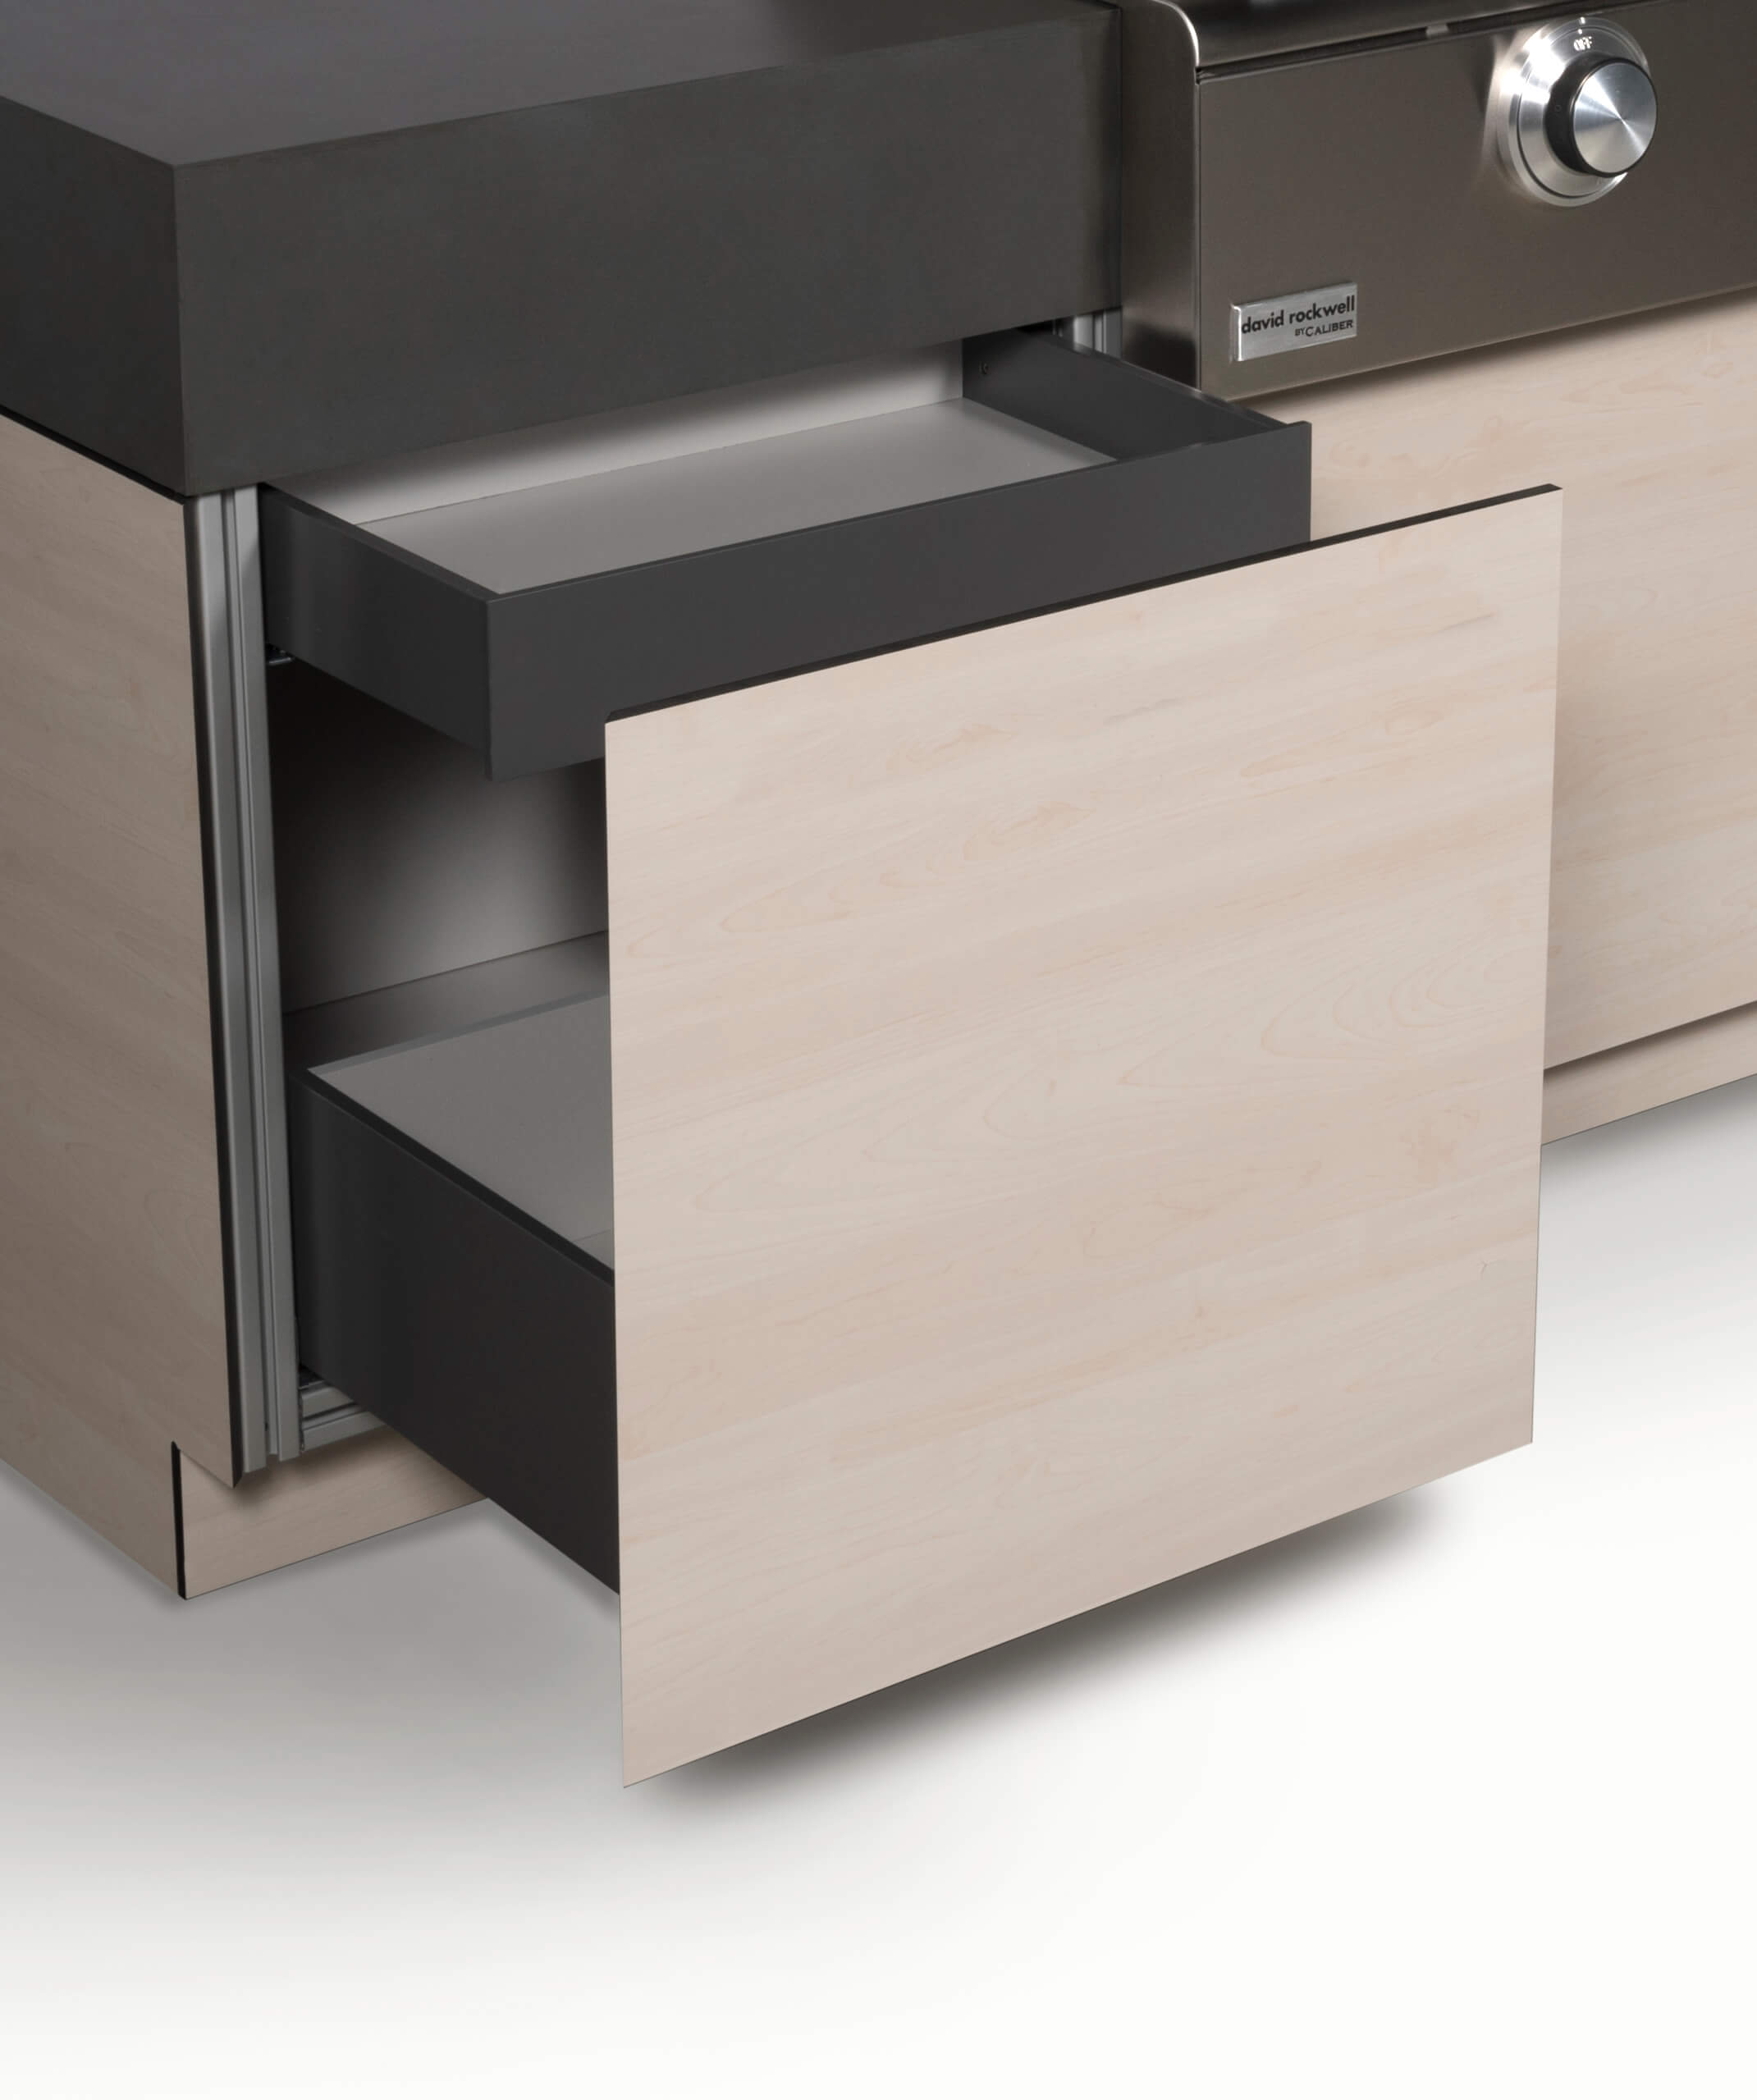 PULL OUT BIN WITH INSET DRAWERS FOR STORAGE AND CUTLERY